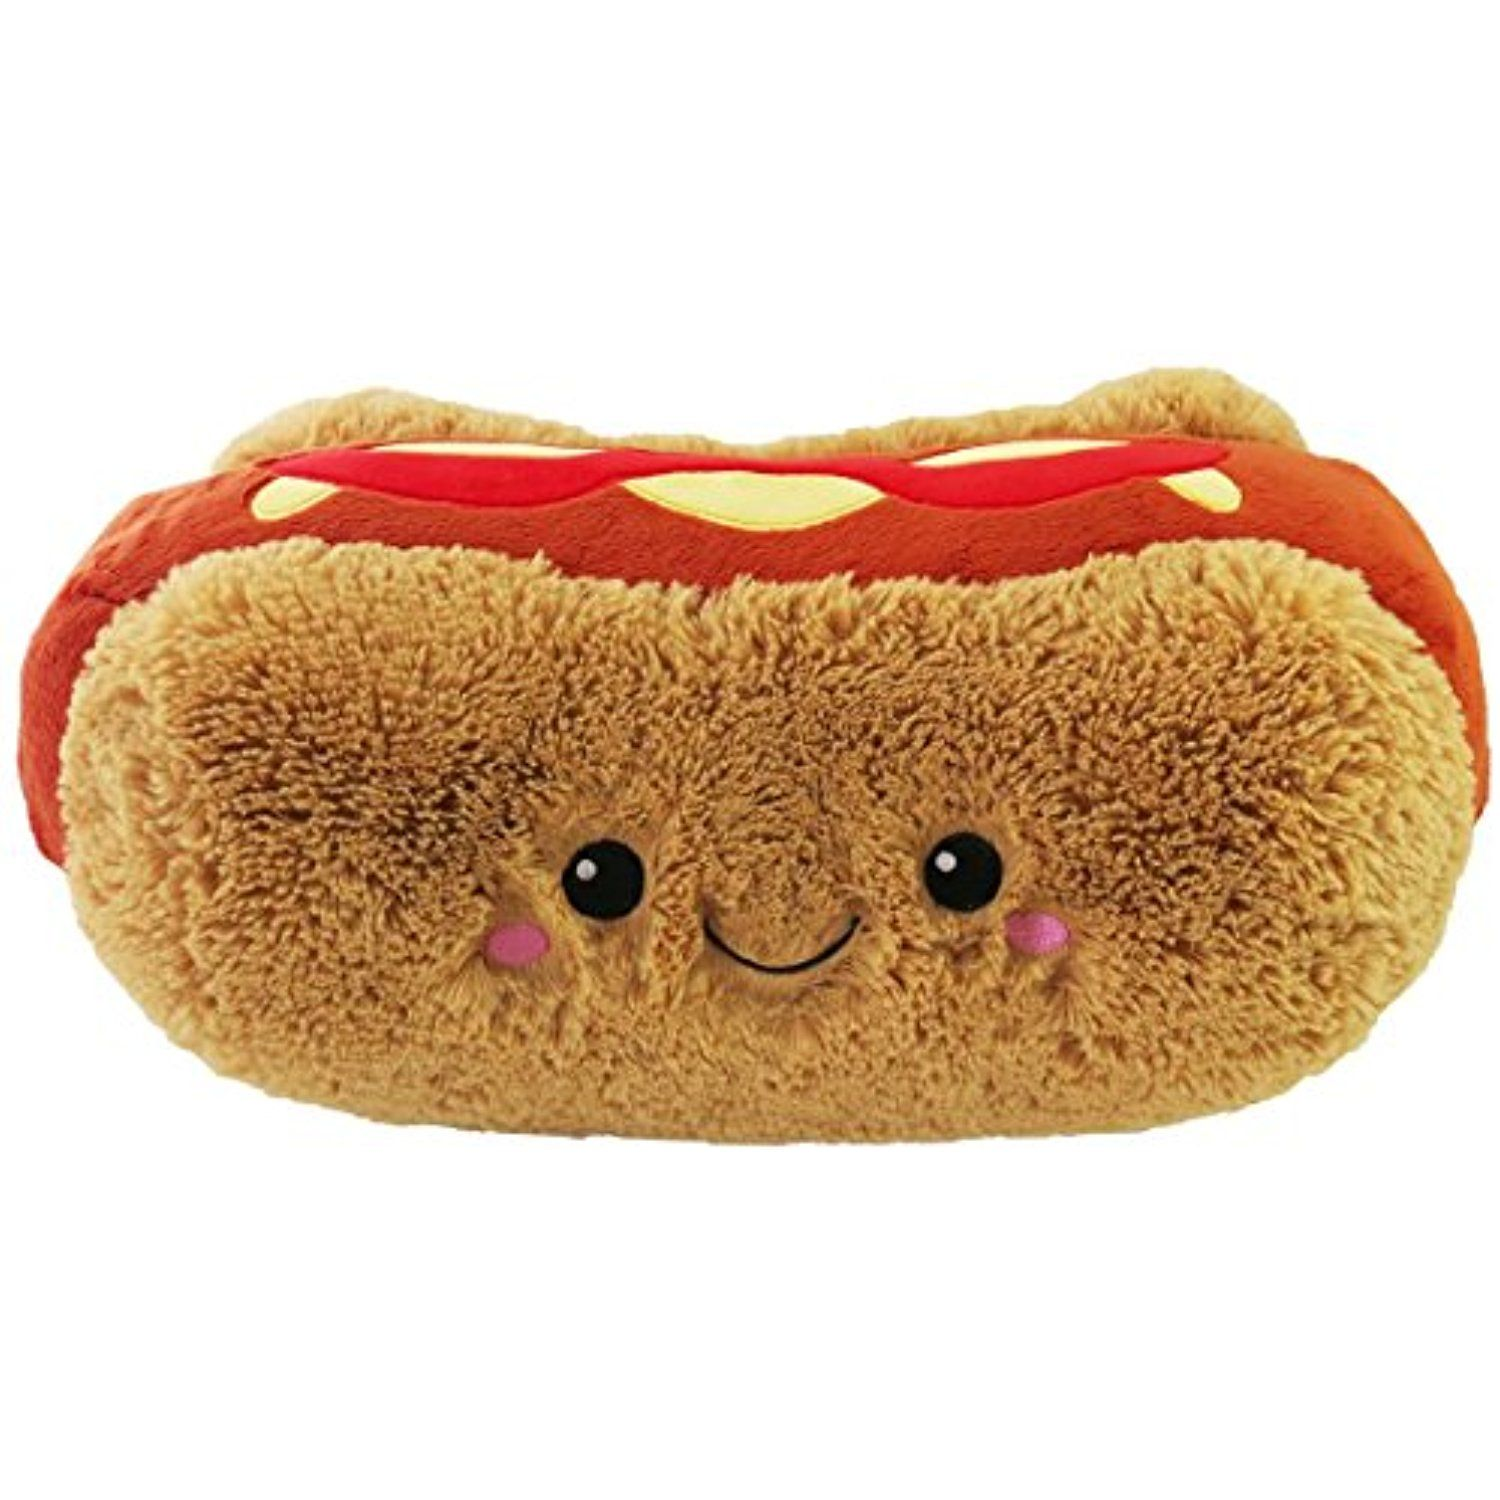 Squishable Comfort Food Hot Dog 15 Plush A Check This